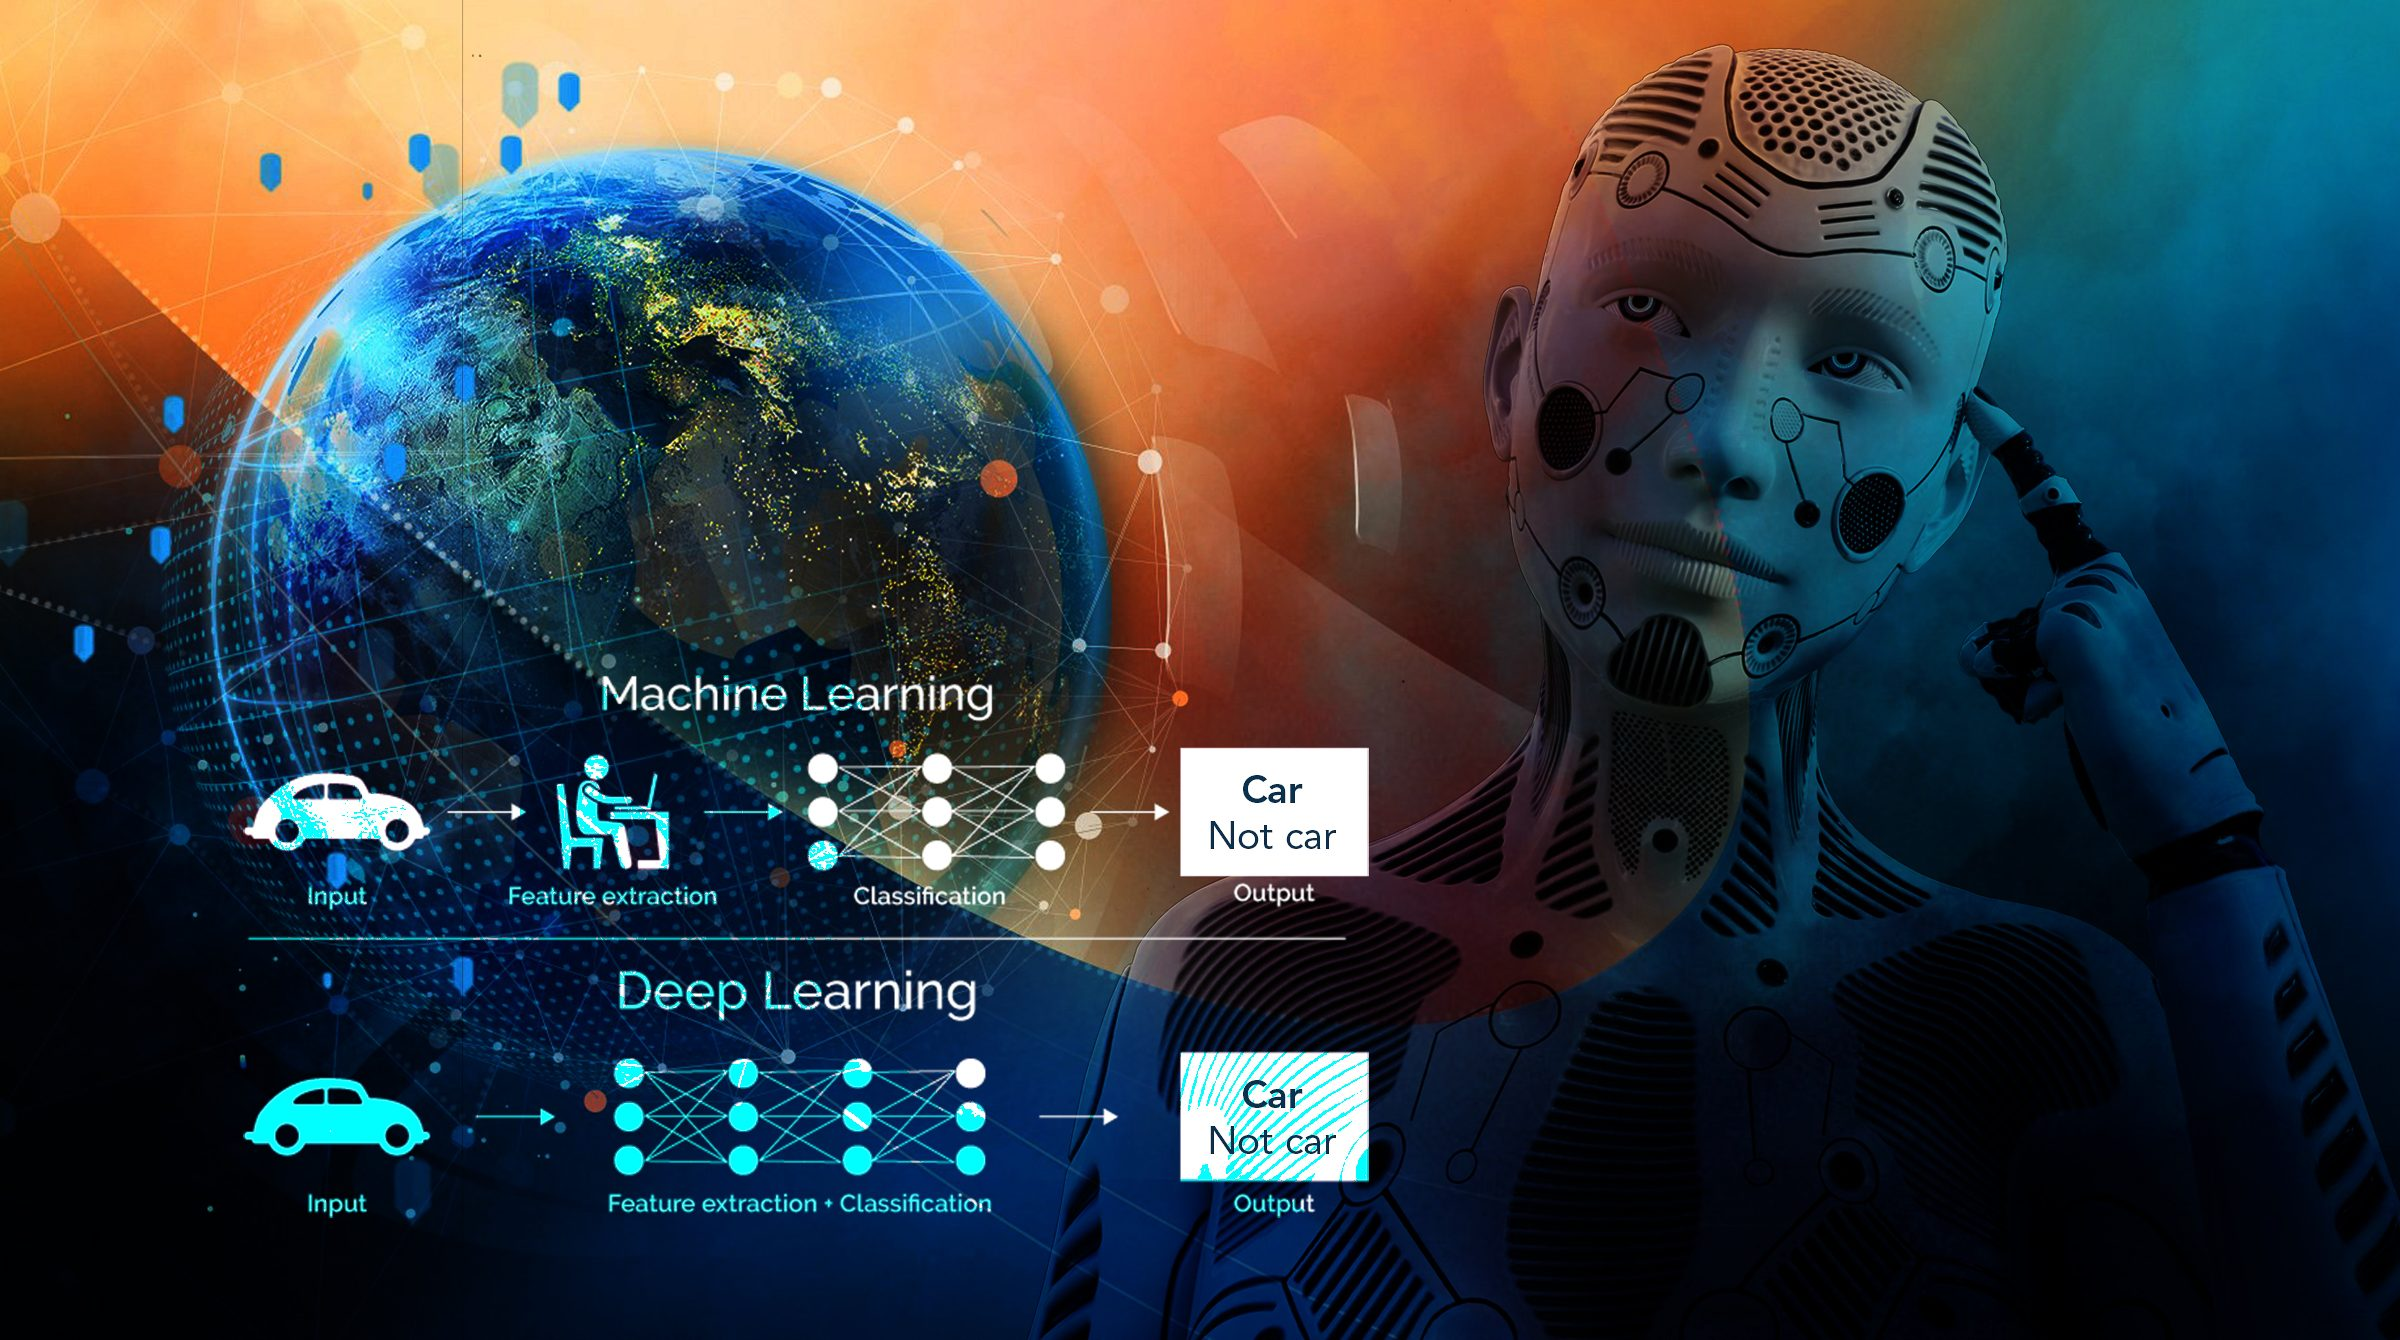 ArcGIS inom AI, machine learning och deep learning